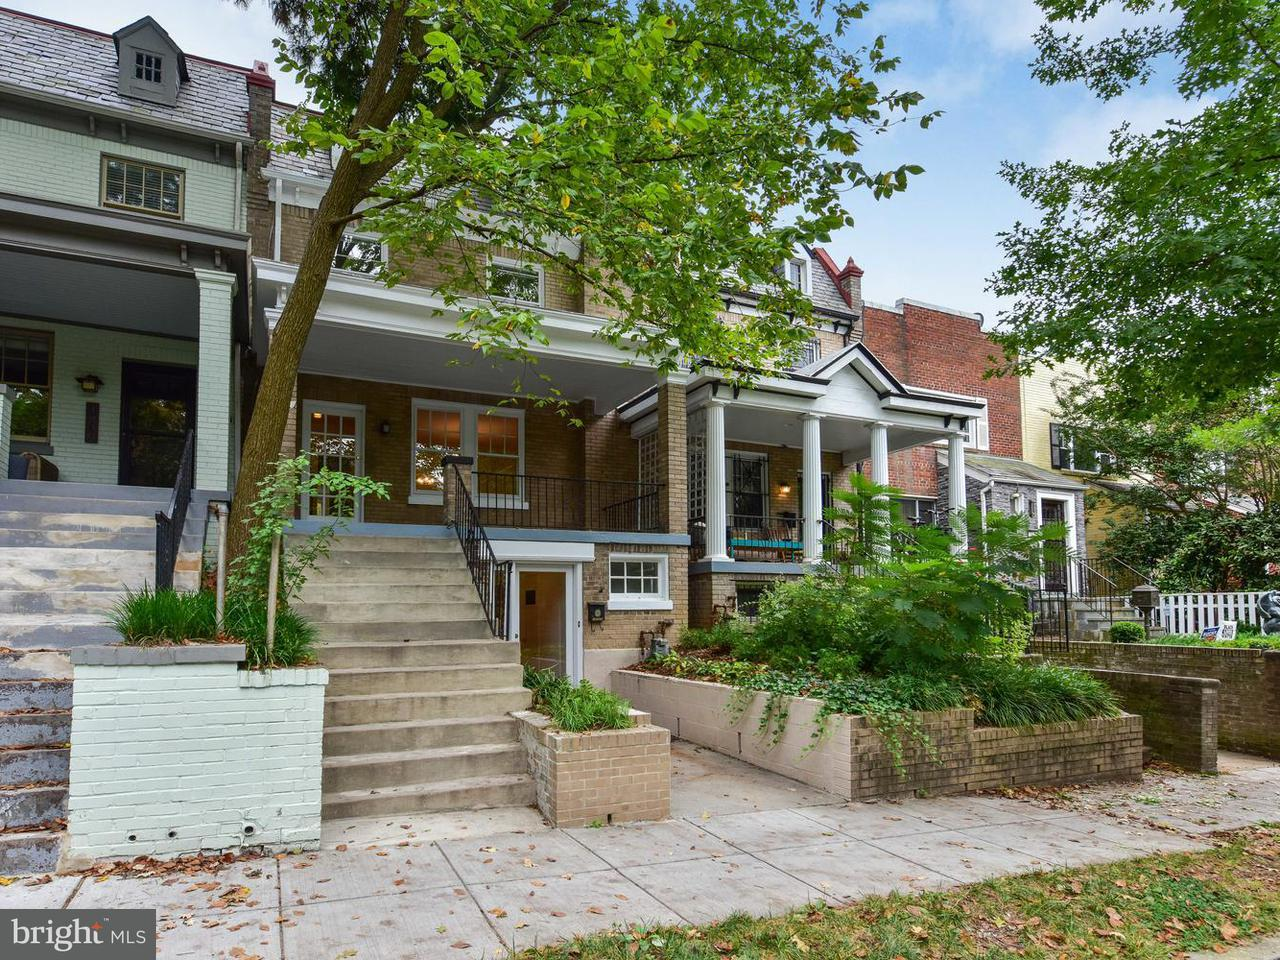 Townhouse for Sale at 1832 IRVING ST NW 1832 IRVING ST NW Washington, District Of Columbia 20010 United States